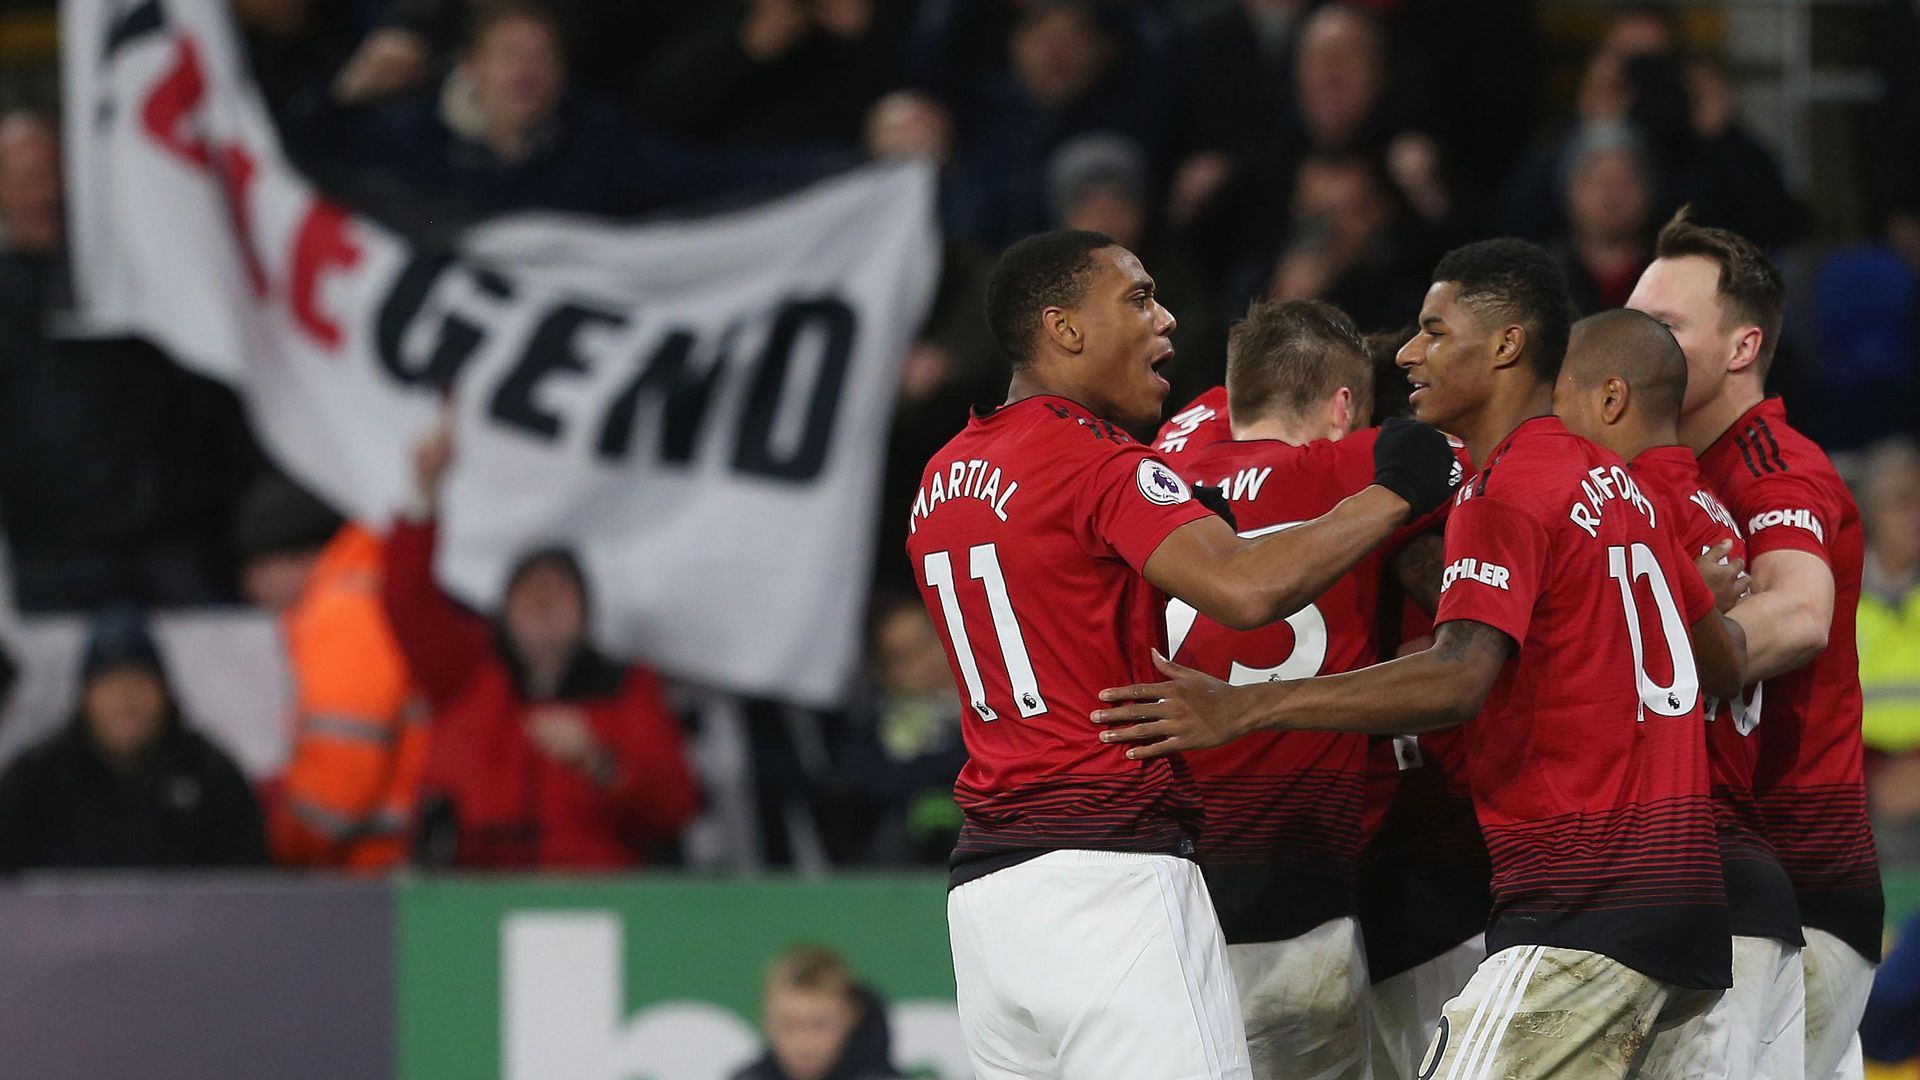 The Match Quiz On Cardiff City 1 Man United 5 Official Manchester United Website